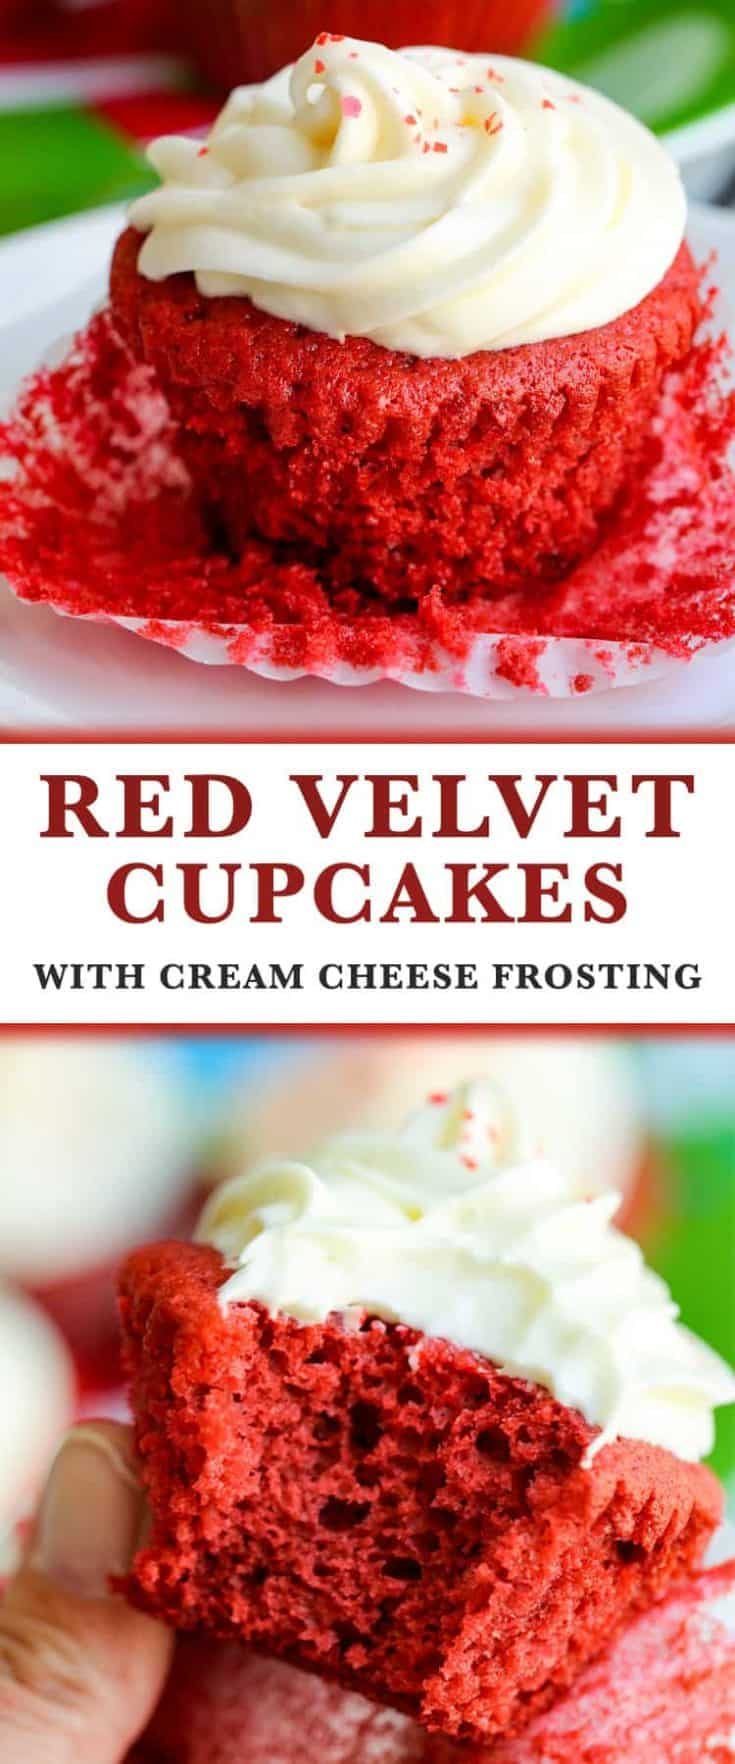 Red Velvet Cupcakes with Cream Cheese Frosting, moist and flavourful cake paired with the best cream cheese frosting. It's a classic and rich dessert recipe #redvelvert #redvelvetcupcakes #cupcake